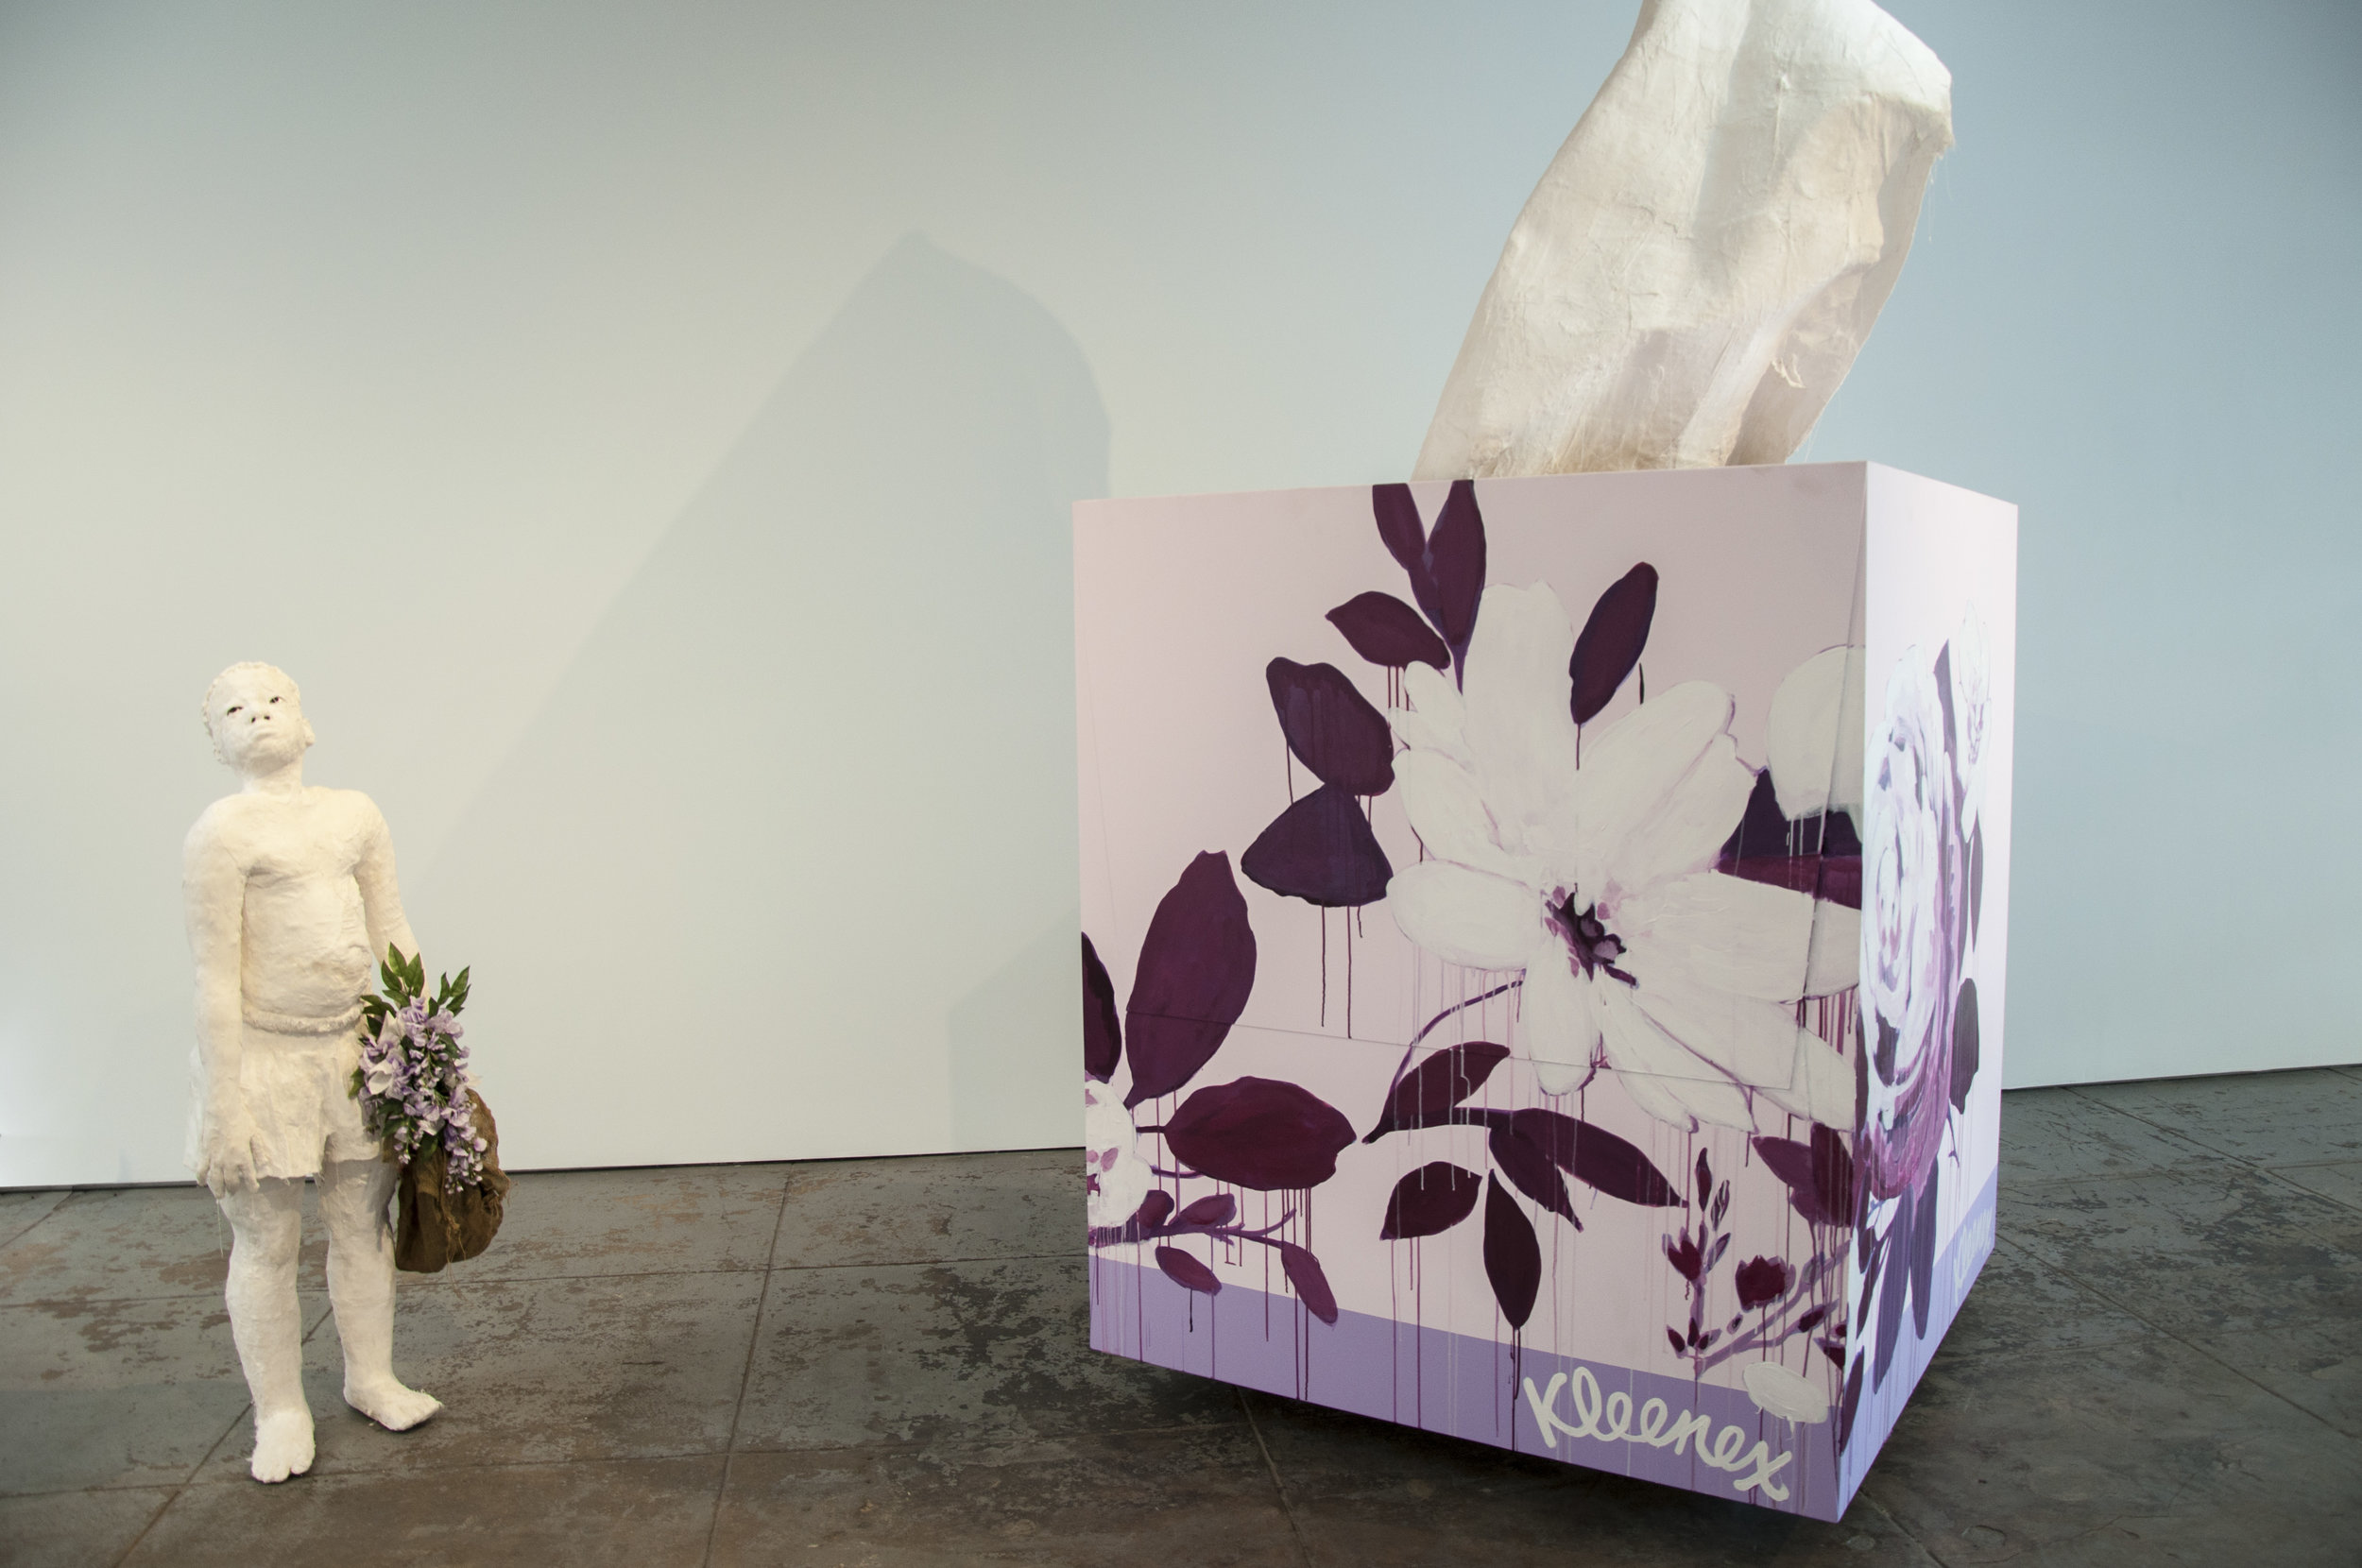 Installation View of Gabriel & Cry, Baby